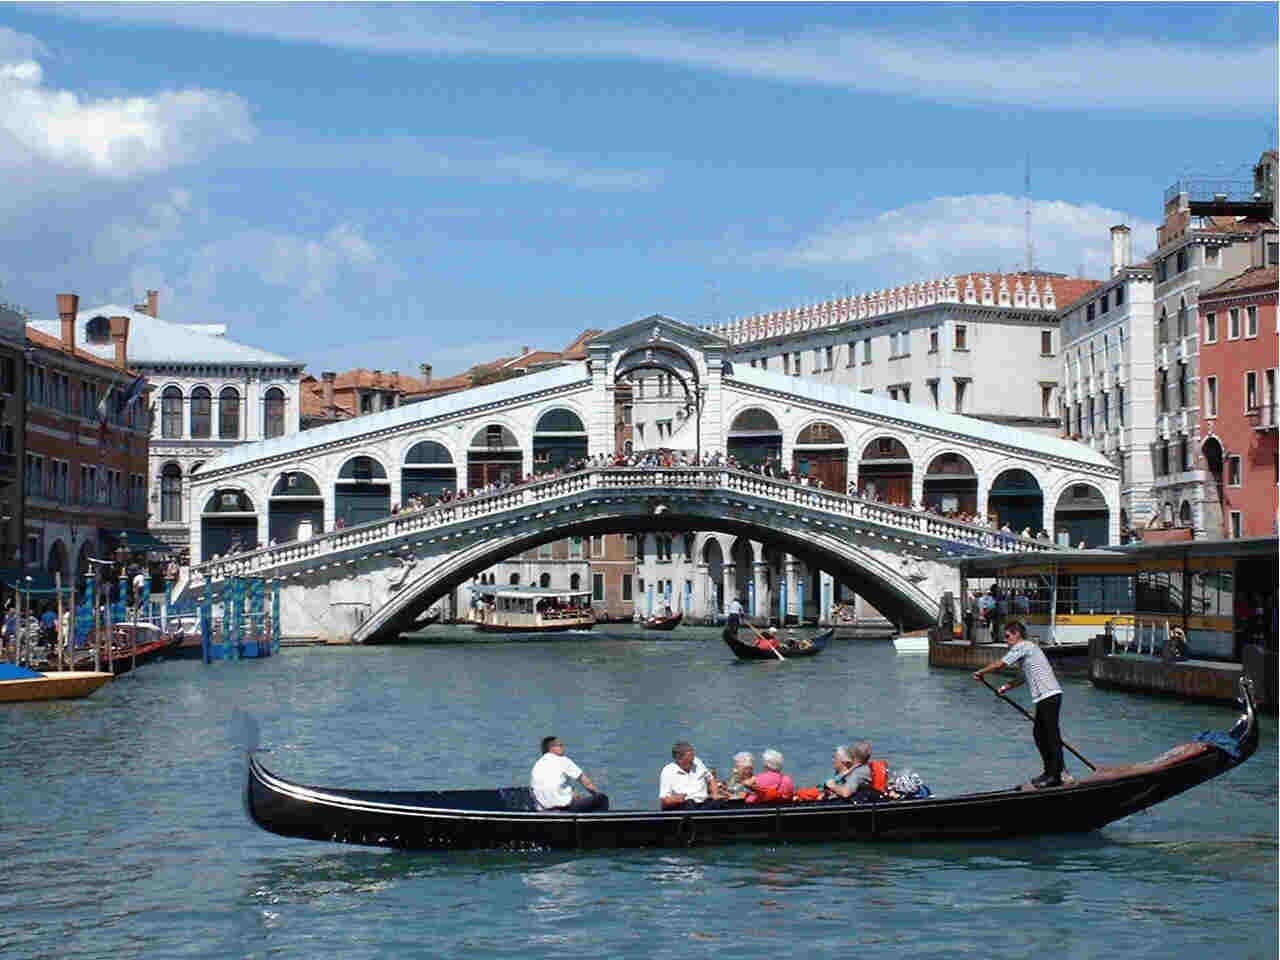 Rialto's Bridge just 2 minutes from house